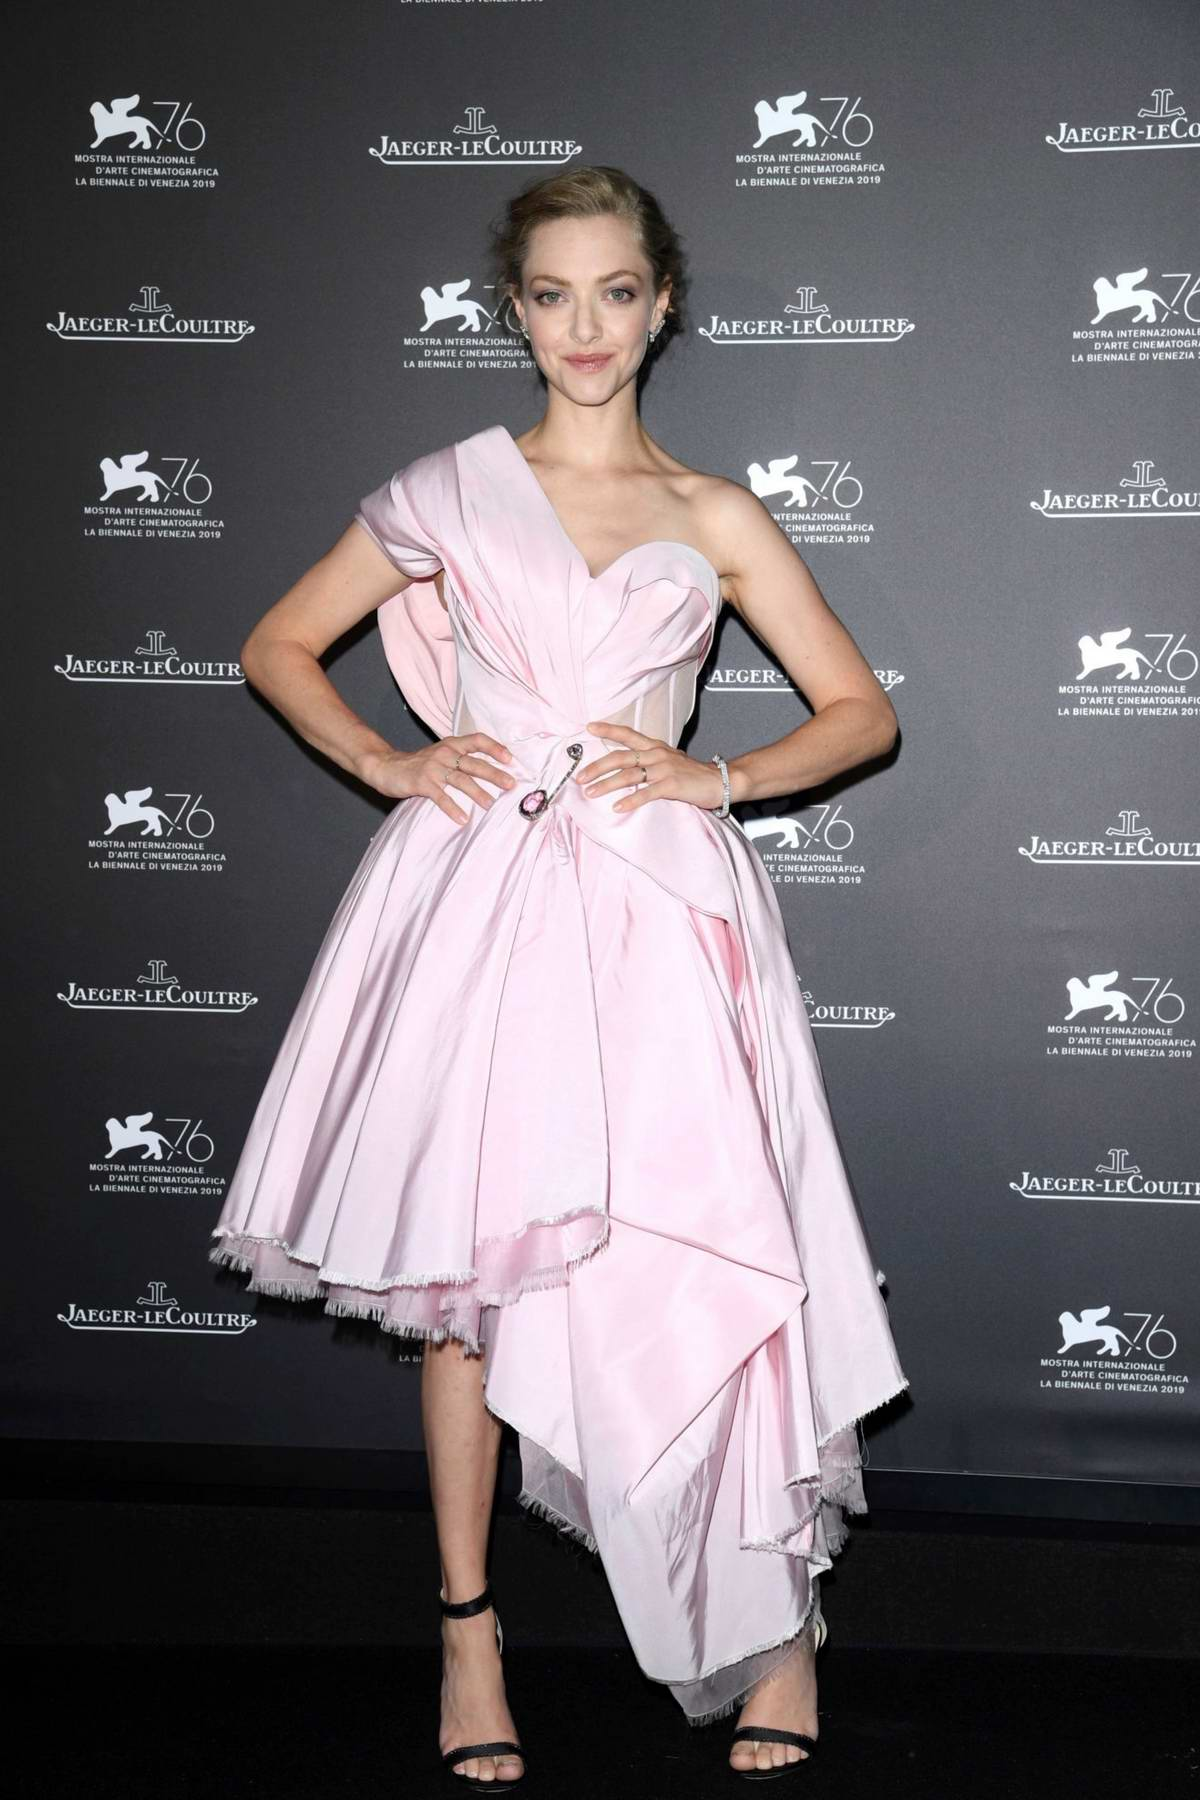 Amanda Seyfried attends the Jaeger-LeCoultre Gala Dinner during the 76th Venice Film Festival in Venice, Italy